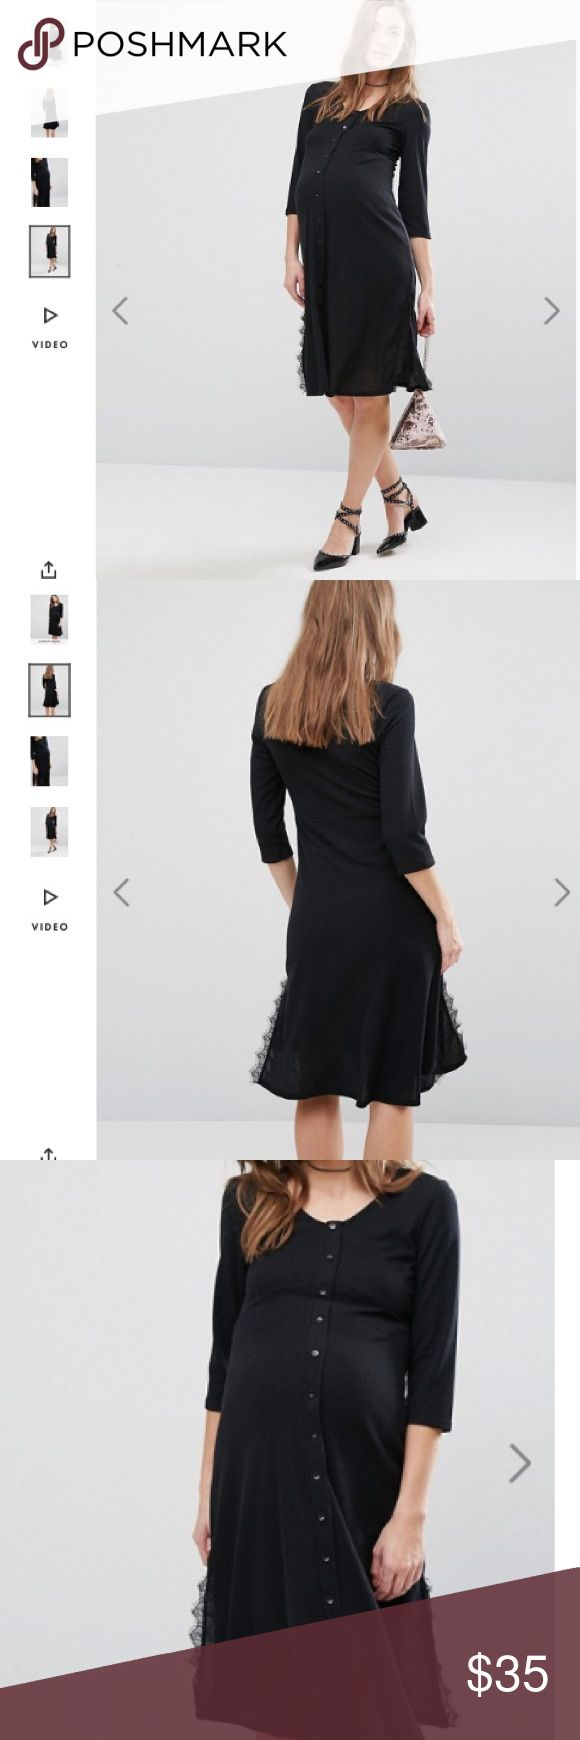 1721 best my posh picks images on pinterest asos maternity summer sale nwt comfy maternity dress size 4 cotton black color dress ombrellifo Image collections